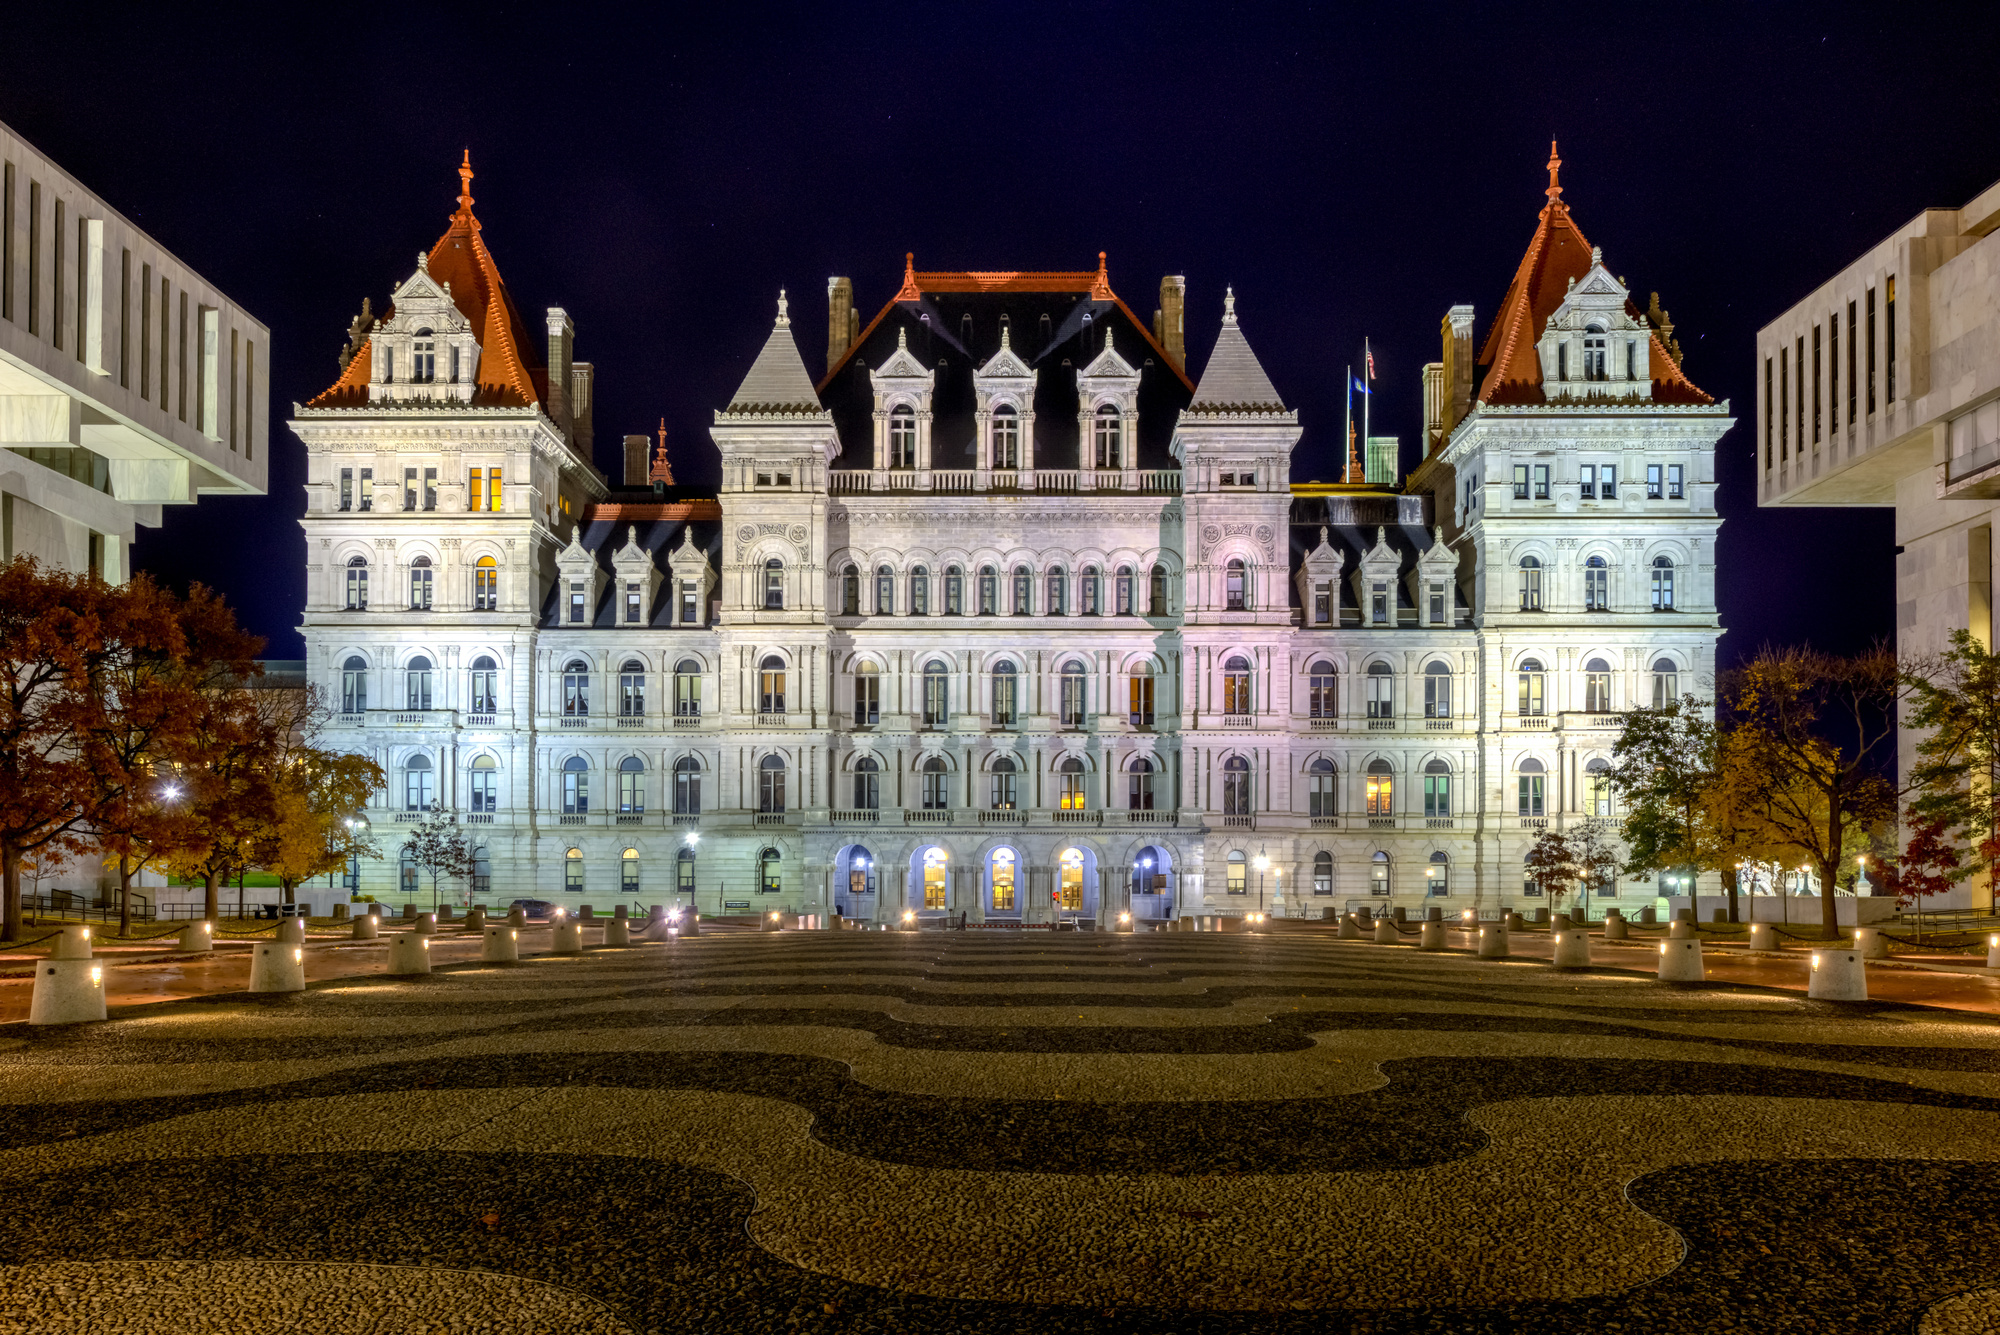 If You Have A Layover In Albany Ny There Are Variety Of Things To Do While Re Here Whether Four Hours Or 24 We Ve Got List